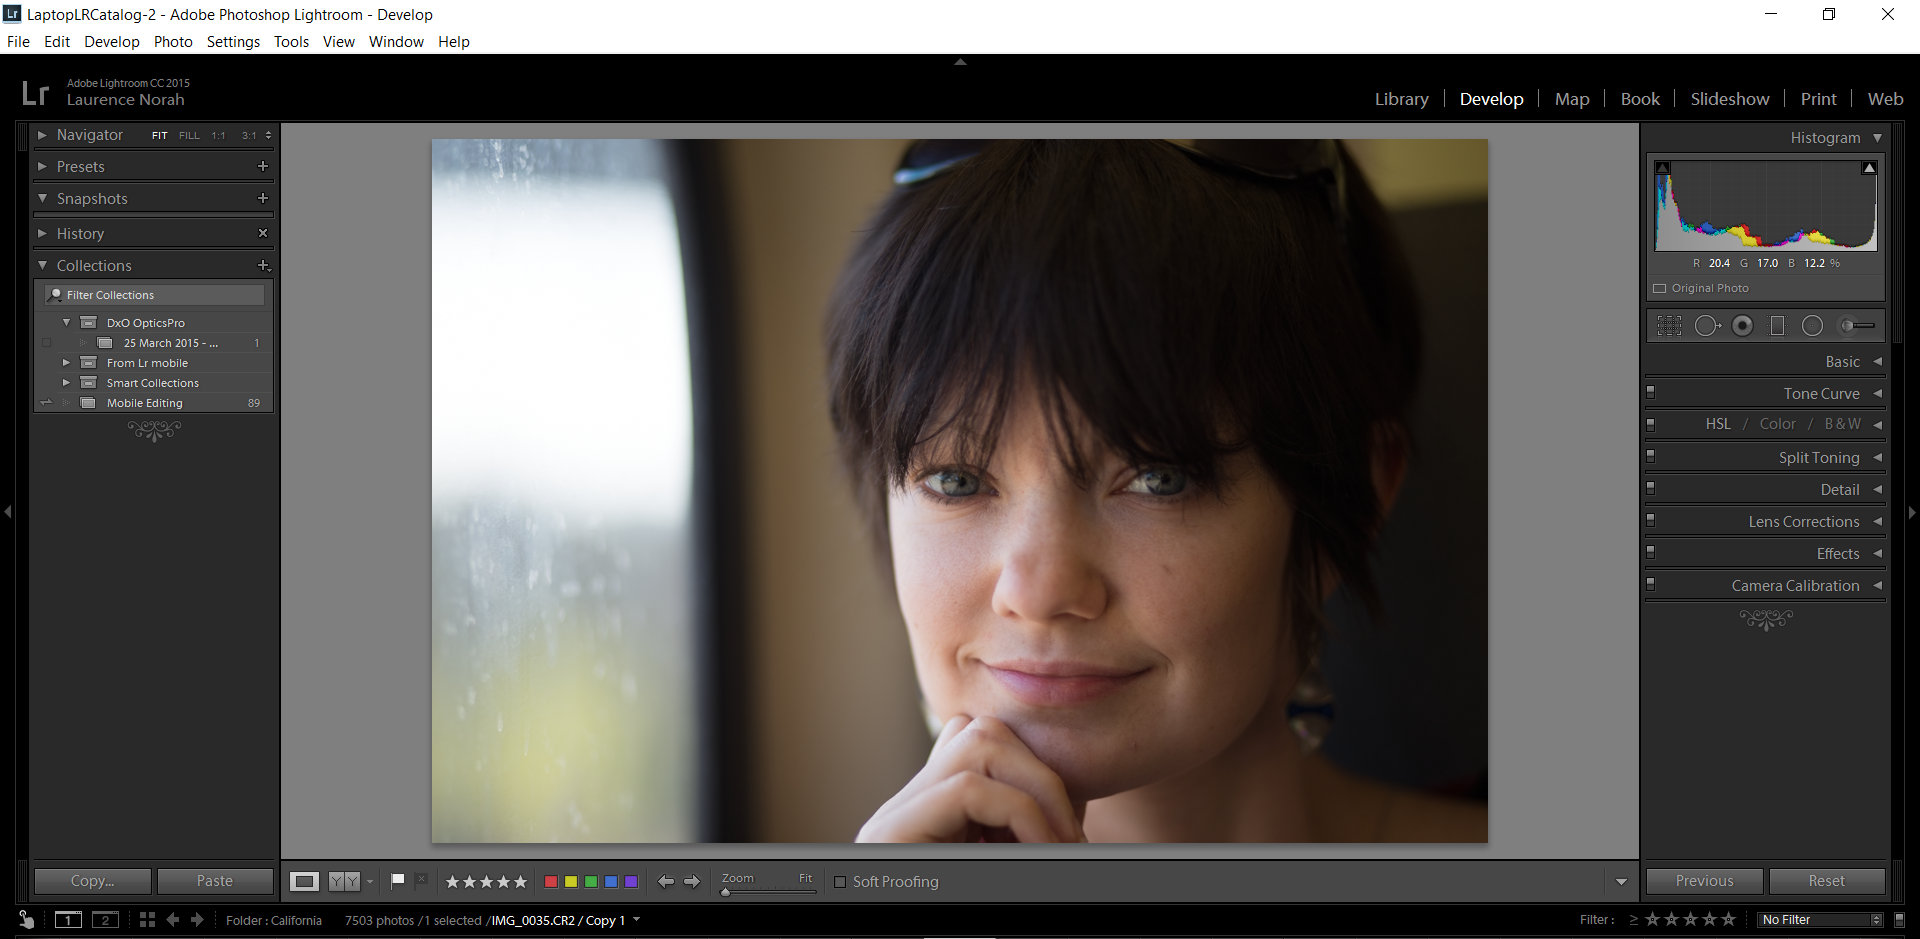 Fix lightroom skin blemish image uploaded in develop module